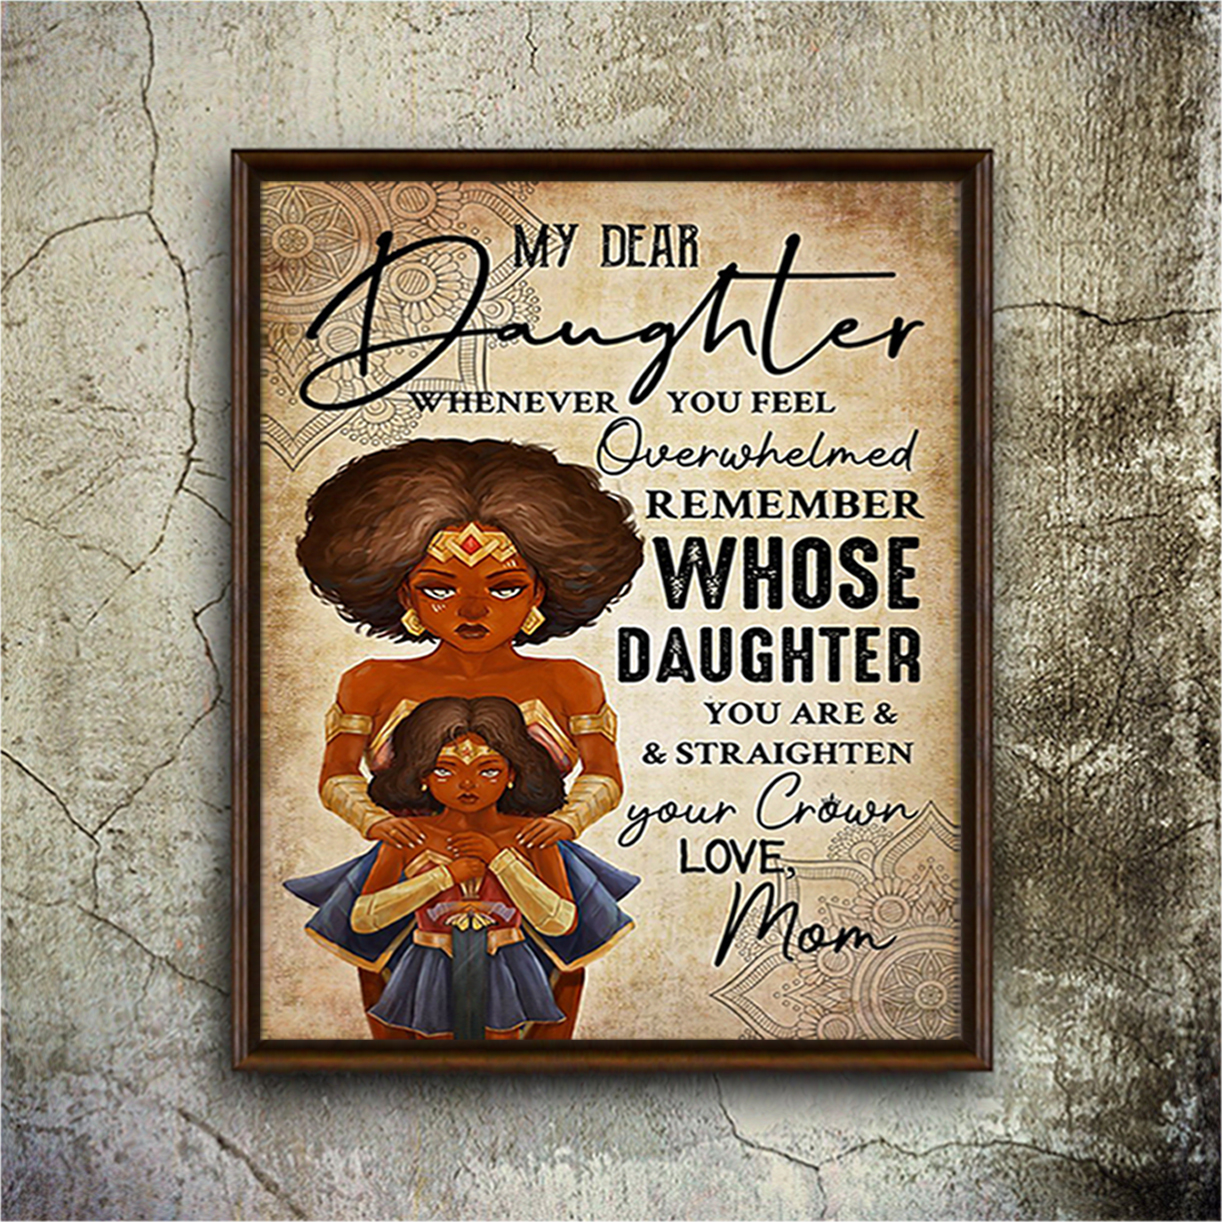 Black wonder woman my dear daughter mom poster A3